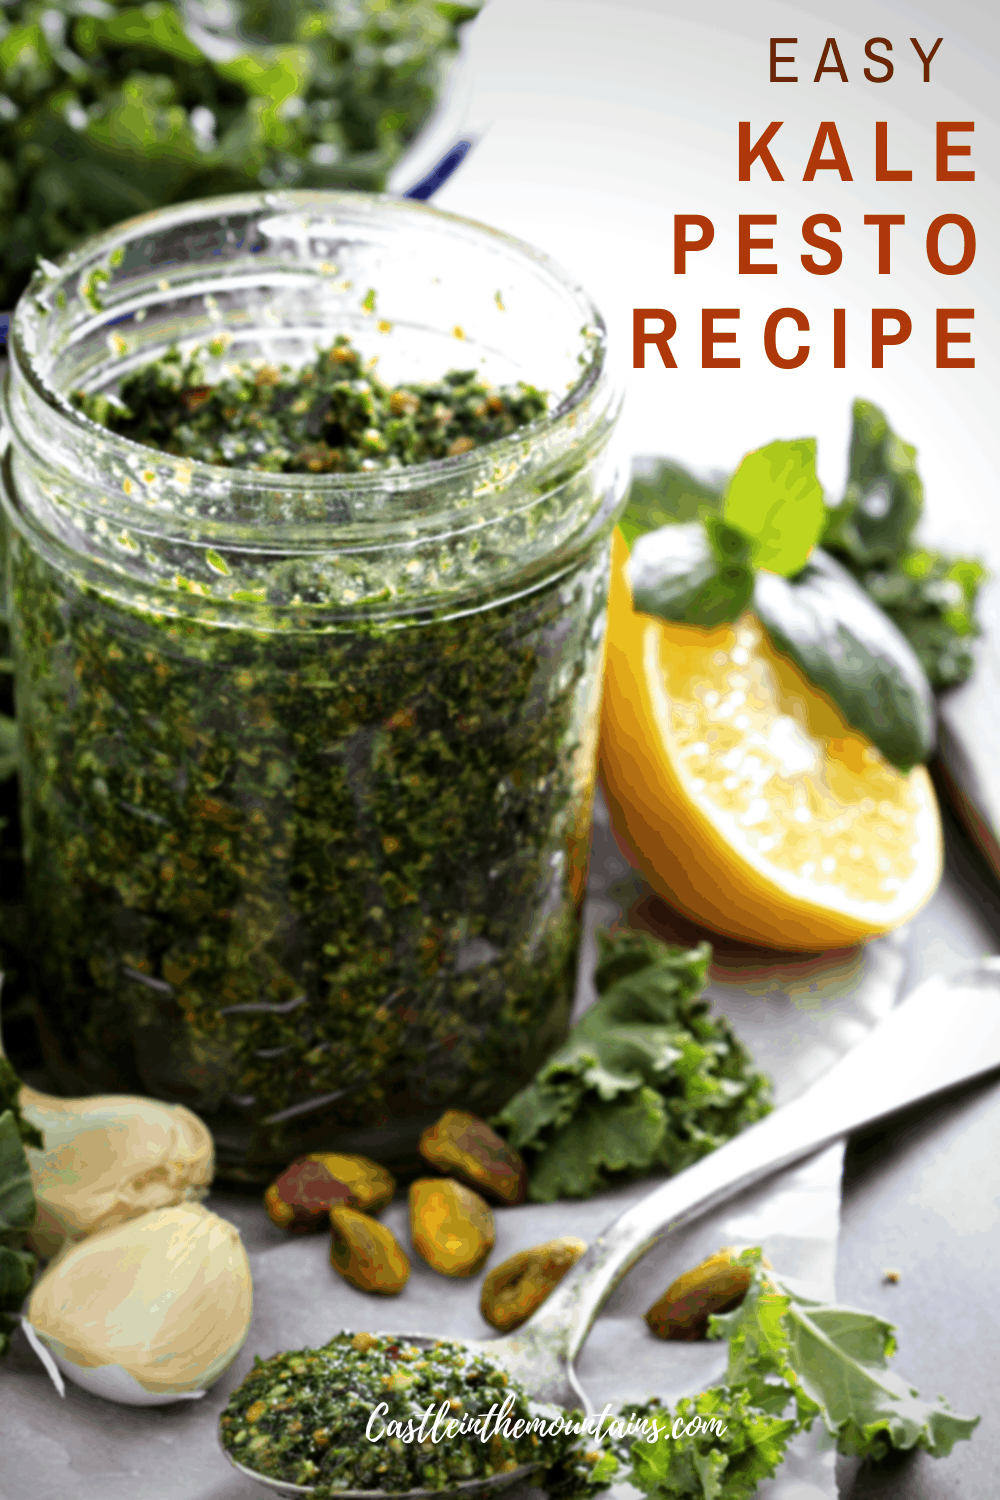 Easy Kale Pesto Sauce